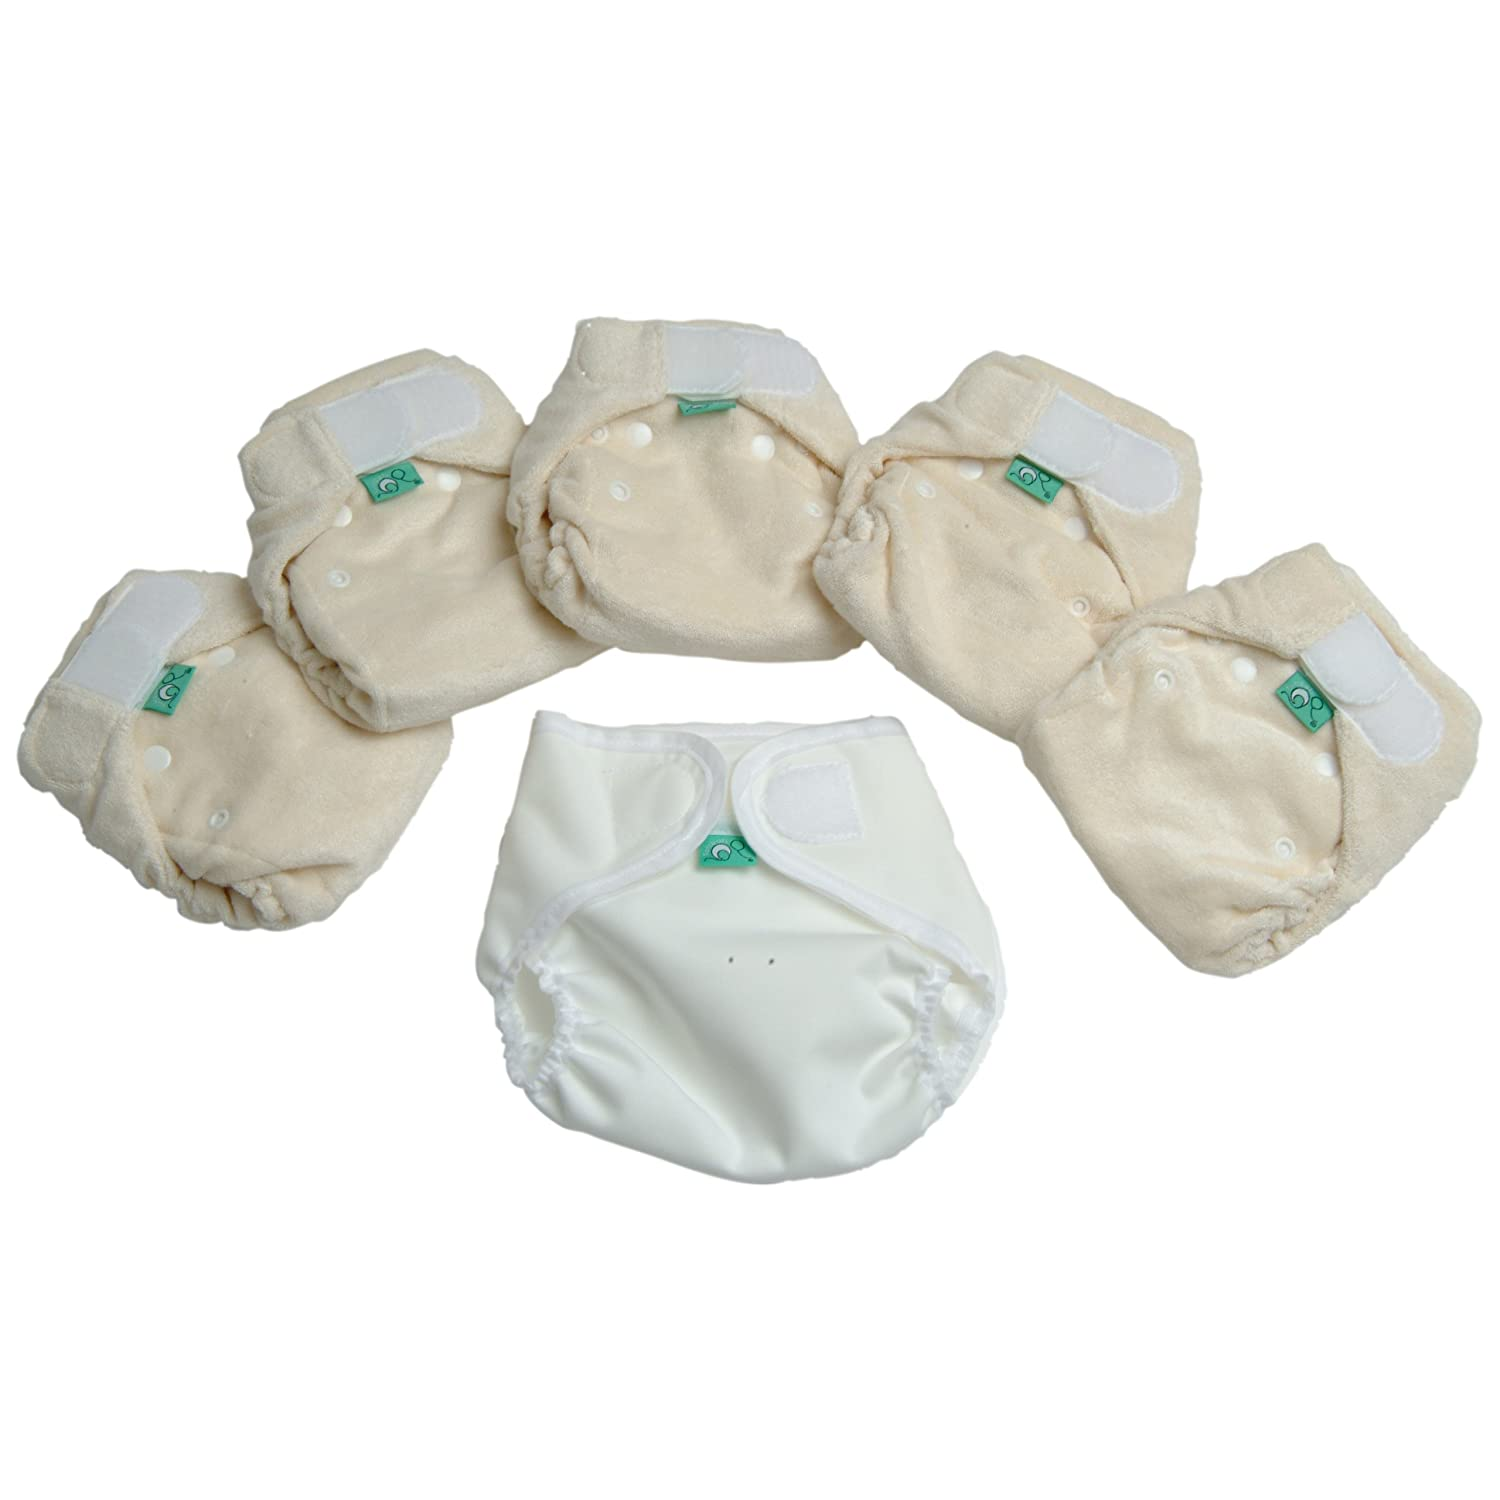 TotsBots Bamboozle Stretch 5 Pack Reusable Washable Nappies from 5lbs to 18lbs in Size 1 TSBS1MIP